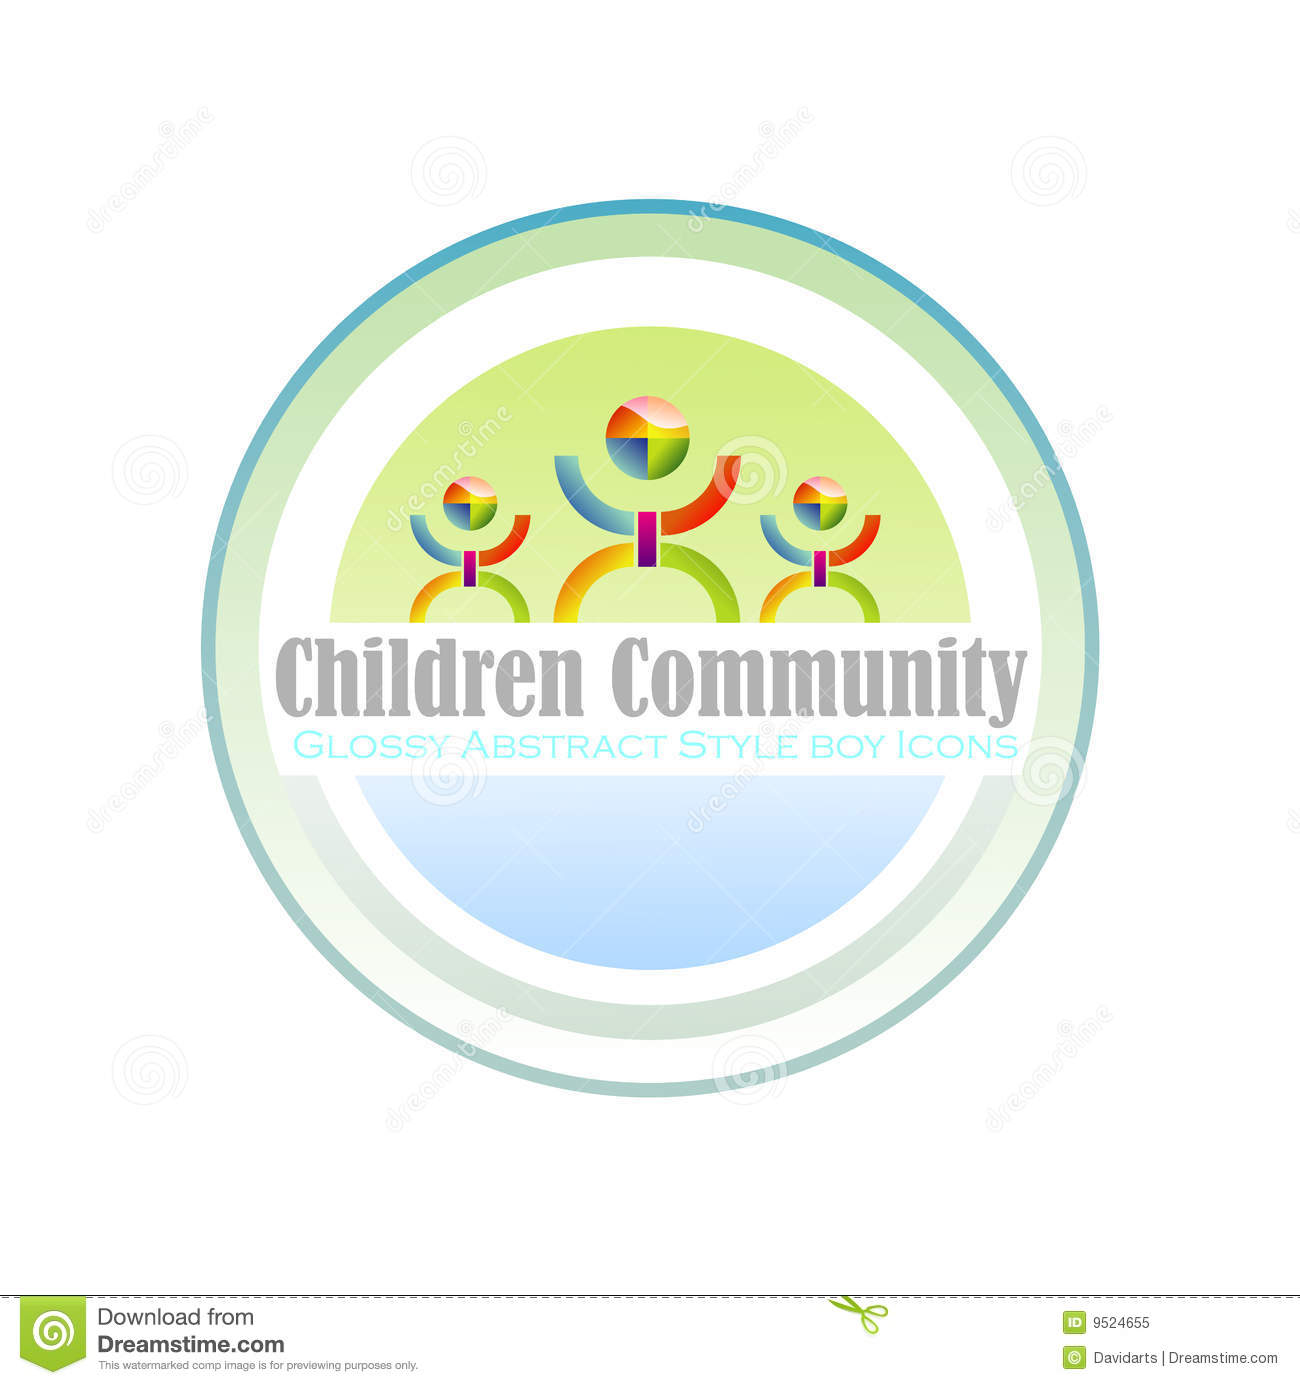 Community Children Symbol Royalty Free Stock Photo - Image: 9524655